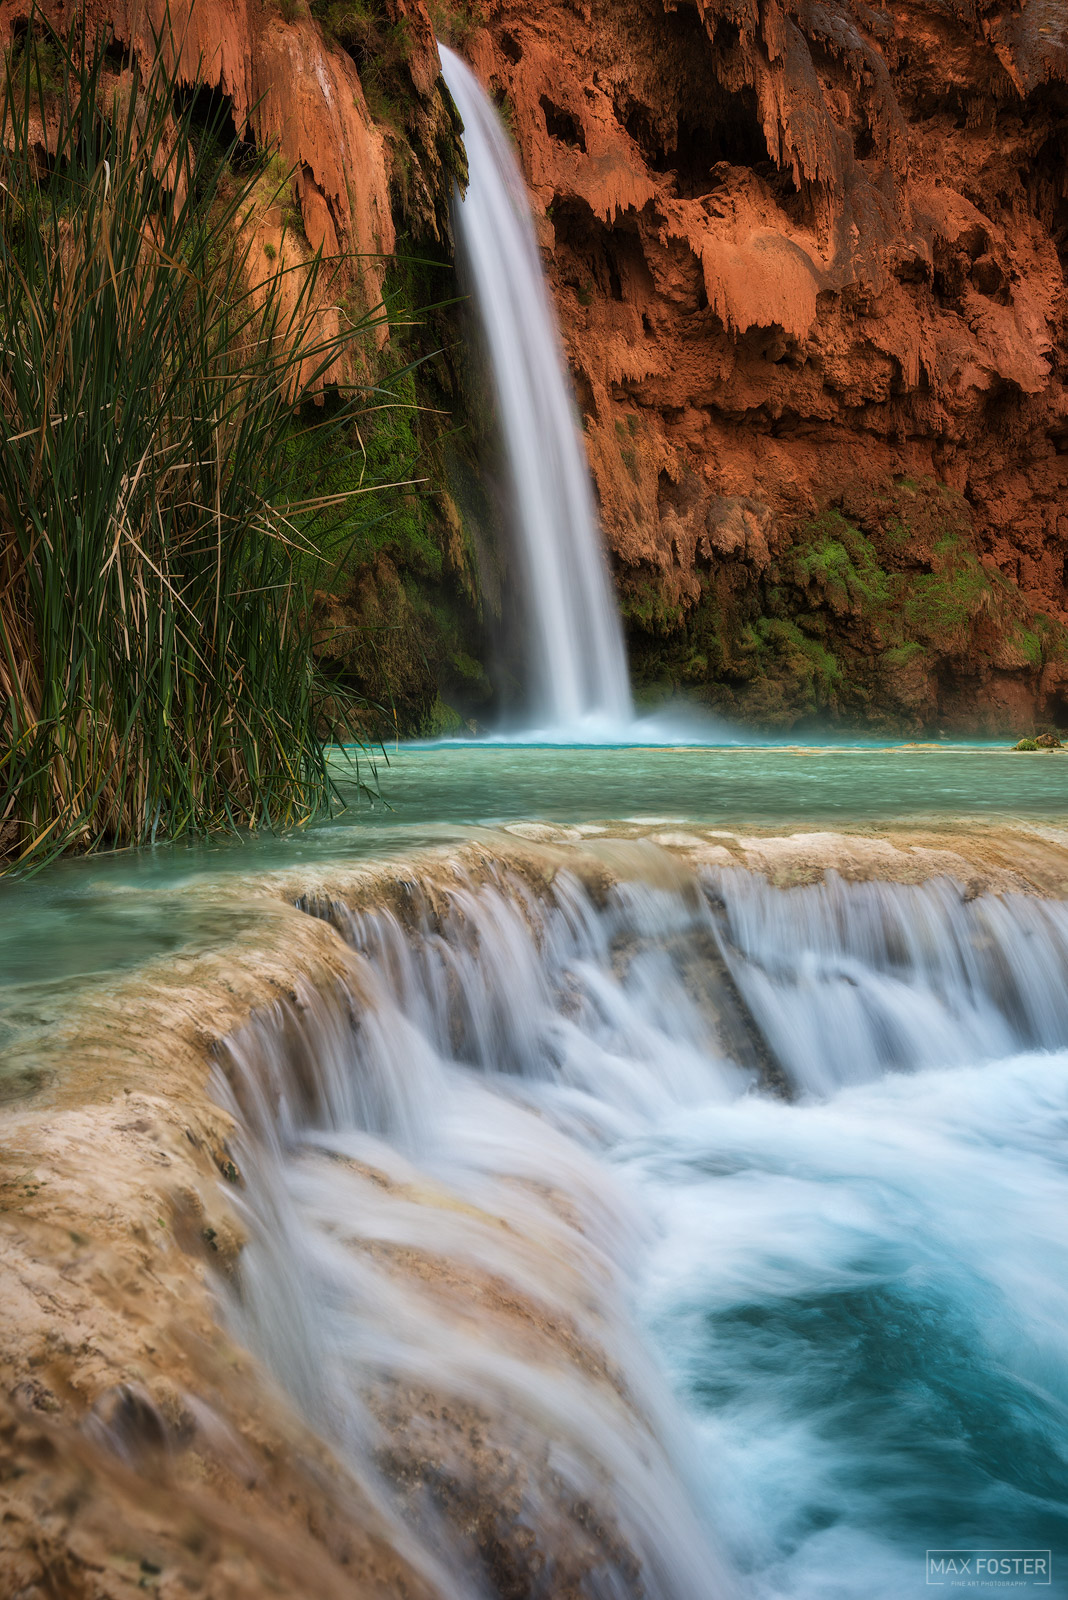 Grand Canyon, Arizona, Havasupai Falls, Havasu Falls, Havasupai, Havasu Creek, Supai, Desert Oasis, Waterfall, photo